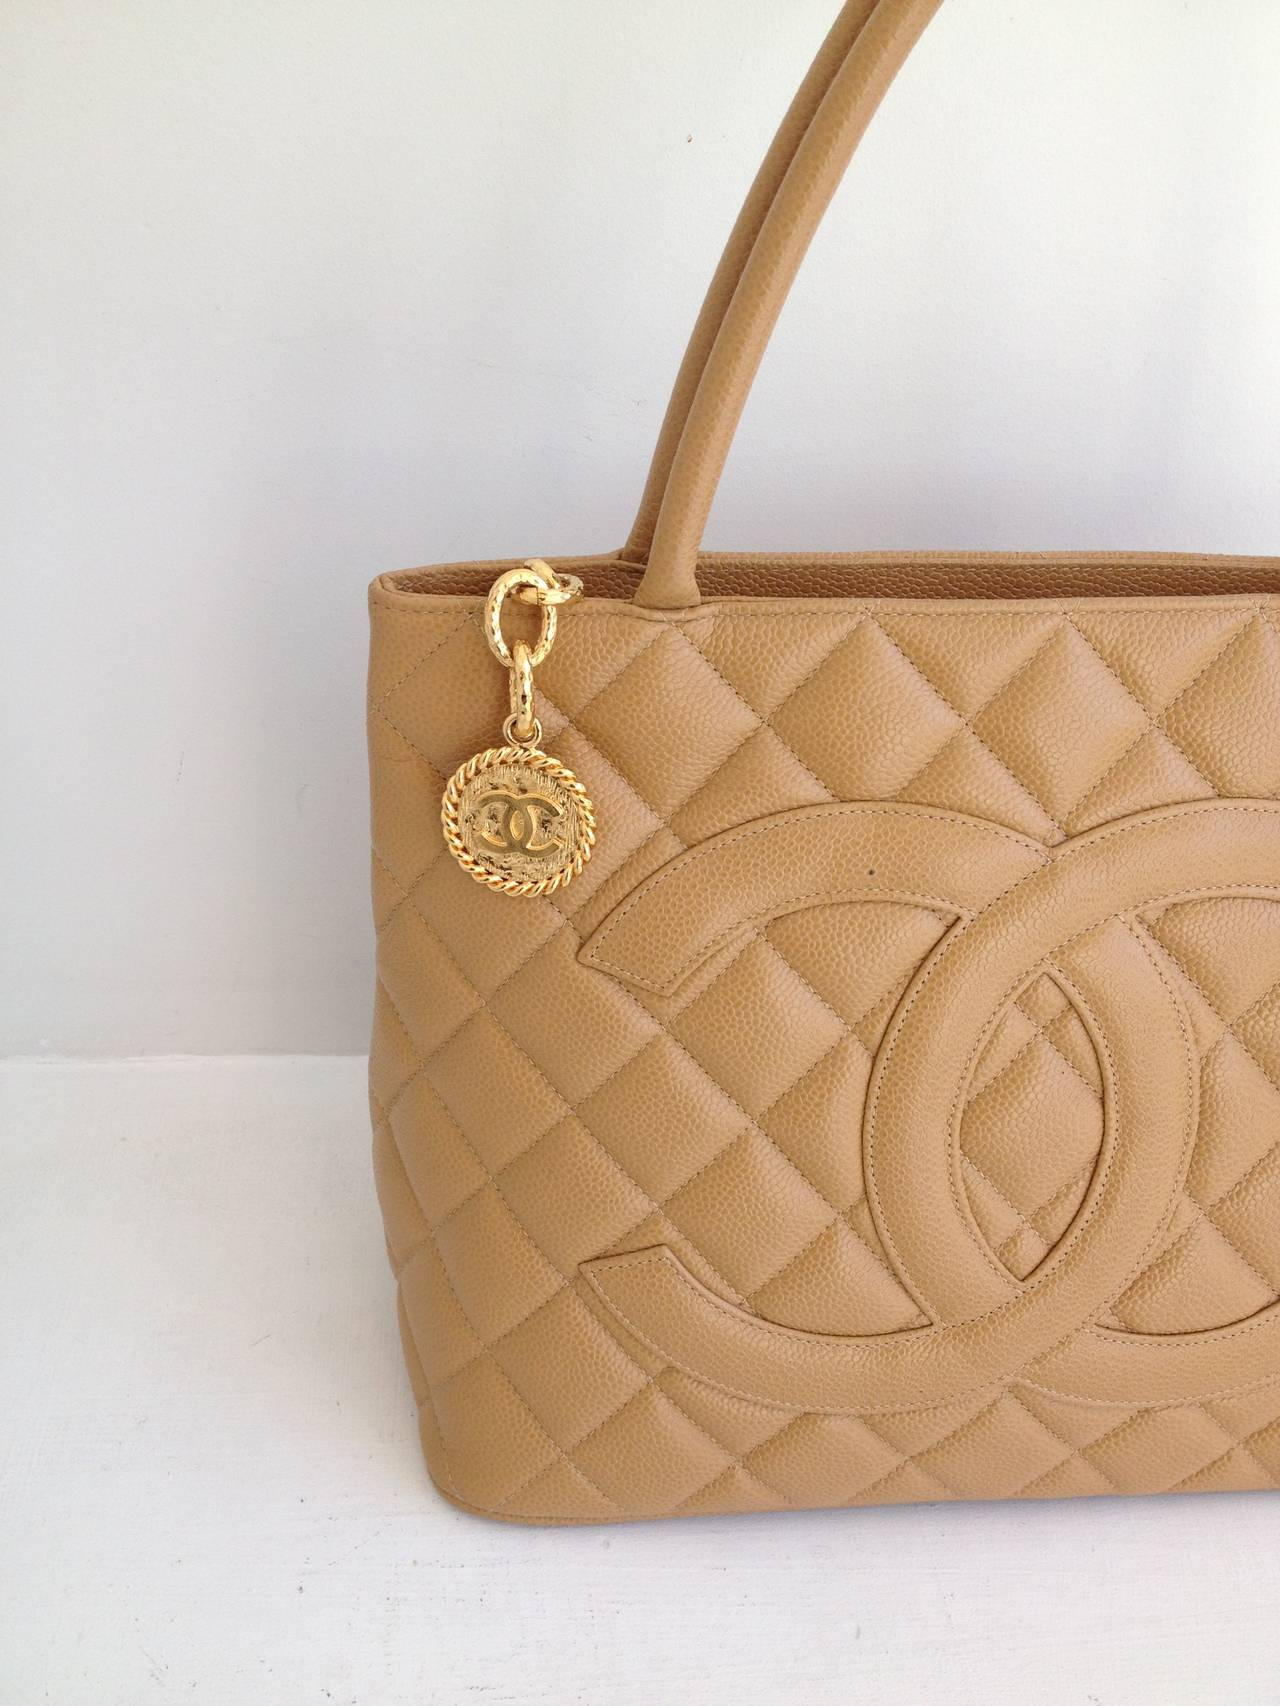 The Quilting And Double C Logo Make This Bag Iconically Chanel But Linear